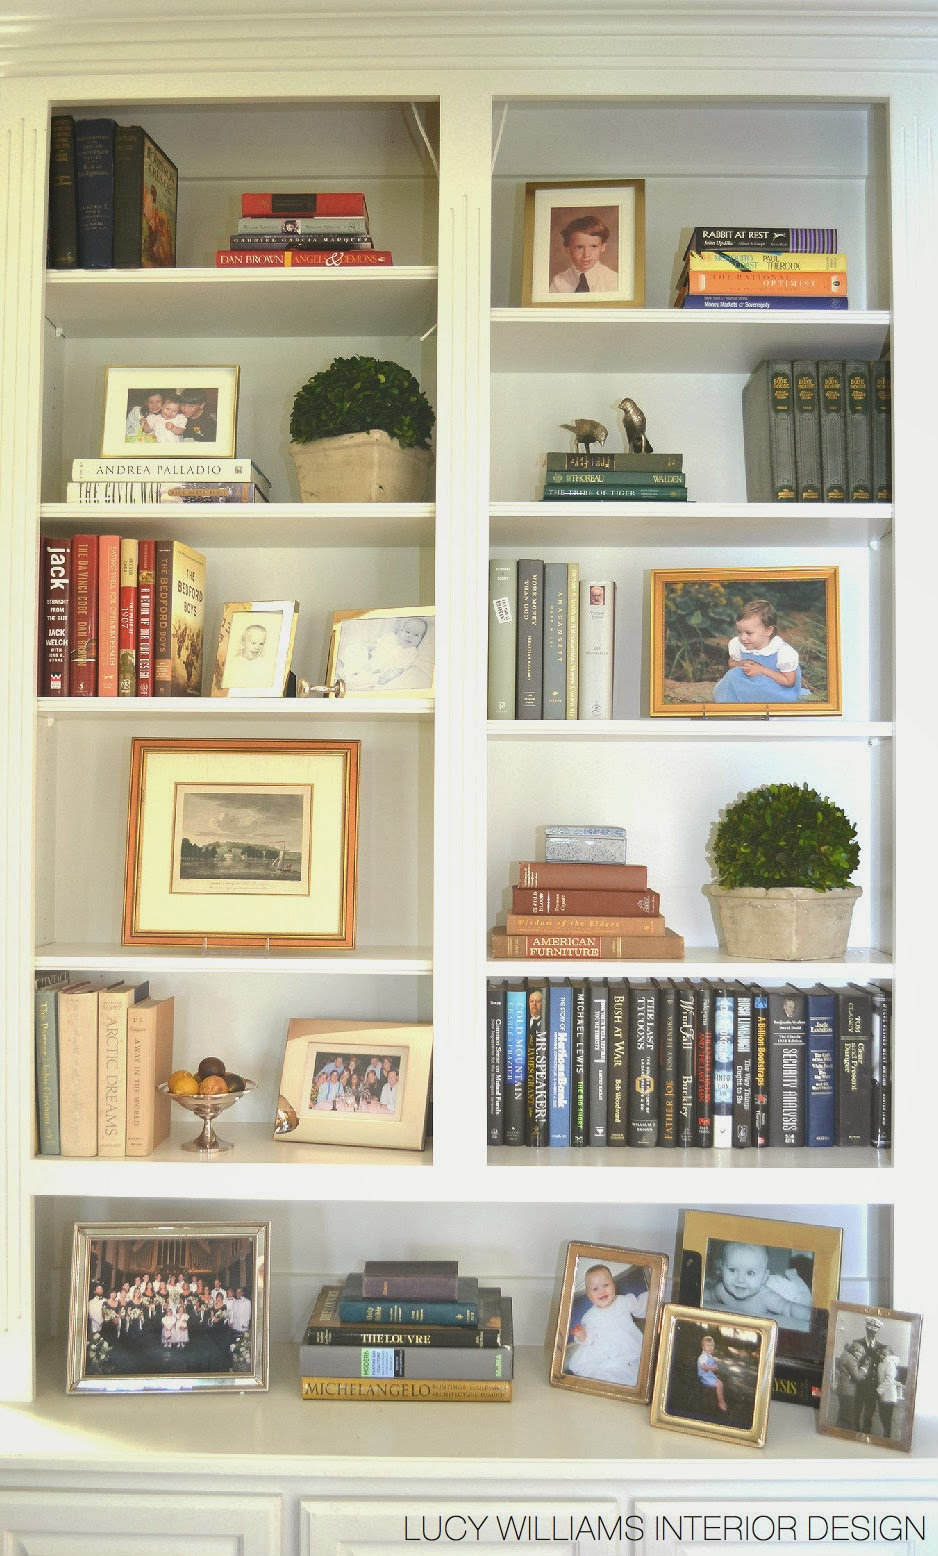 lucy williams interior design blog before and after living room bookcase. Black Bedroom Furniture Sets. Home Design Ideas